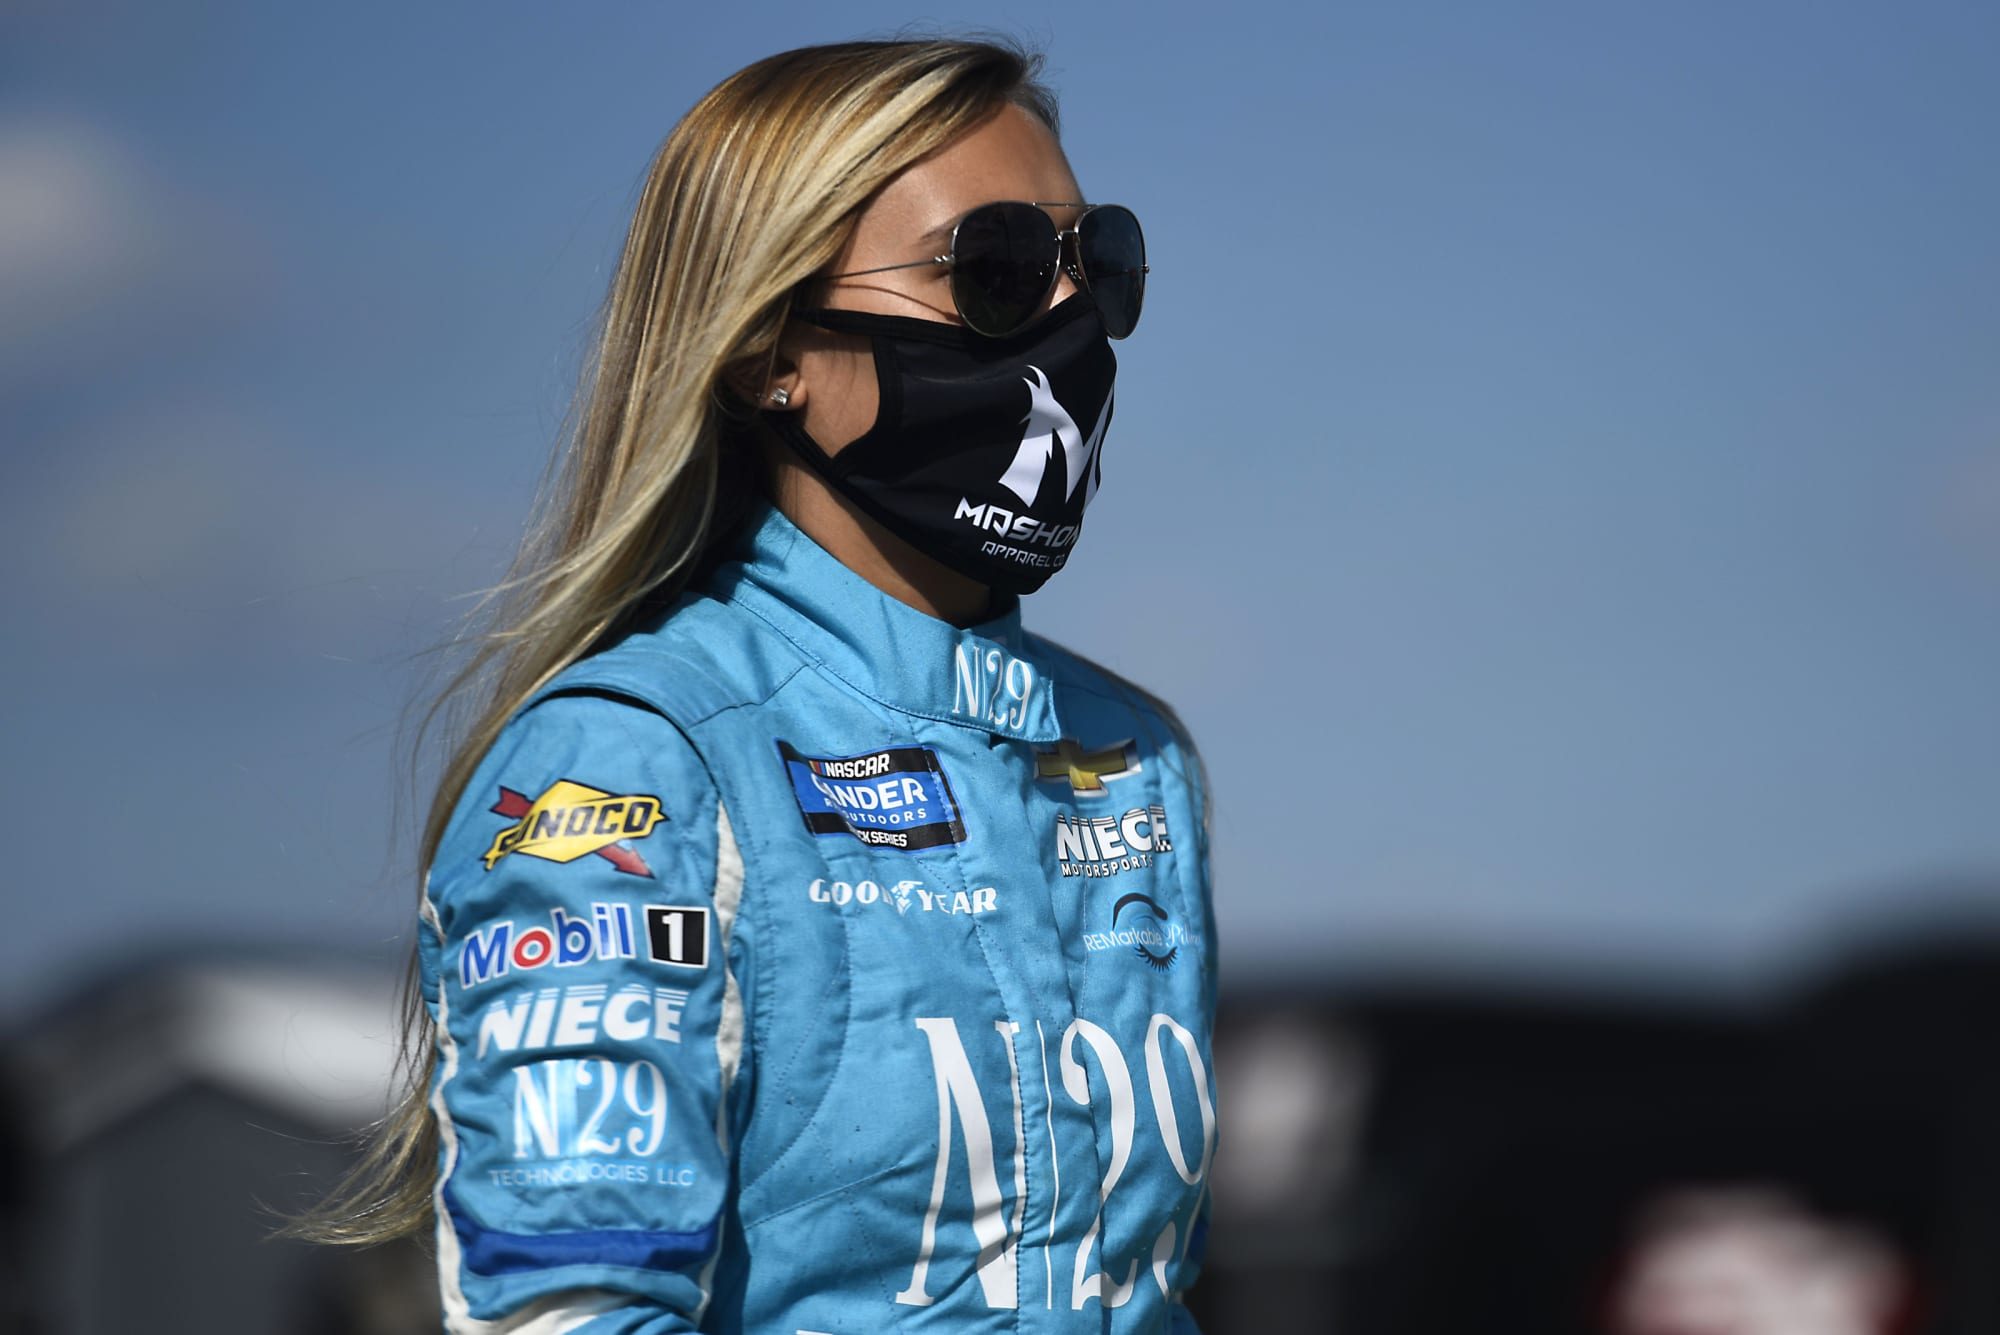 NASCAR: Natalie Decker cleared to return to racing